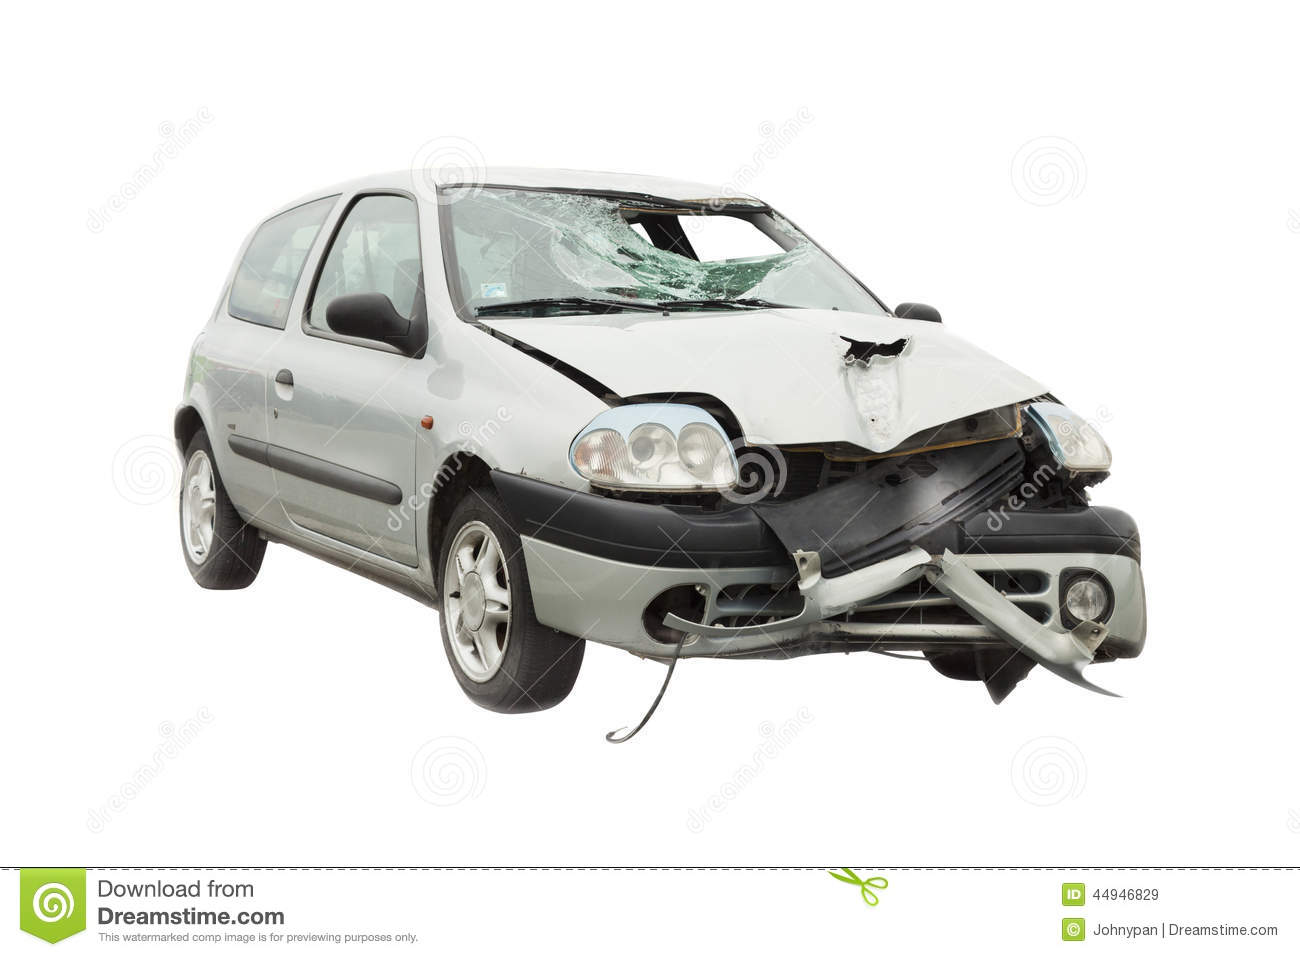 Wrecked car accident stock image. Image of fender, glass - 44946829